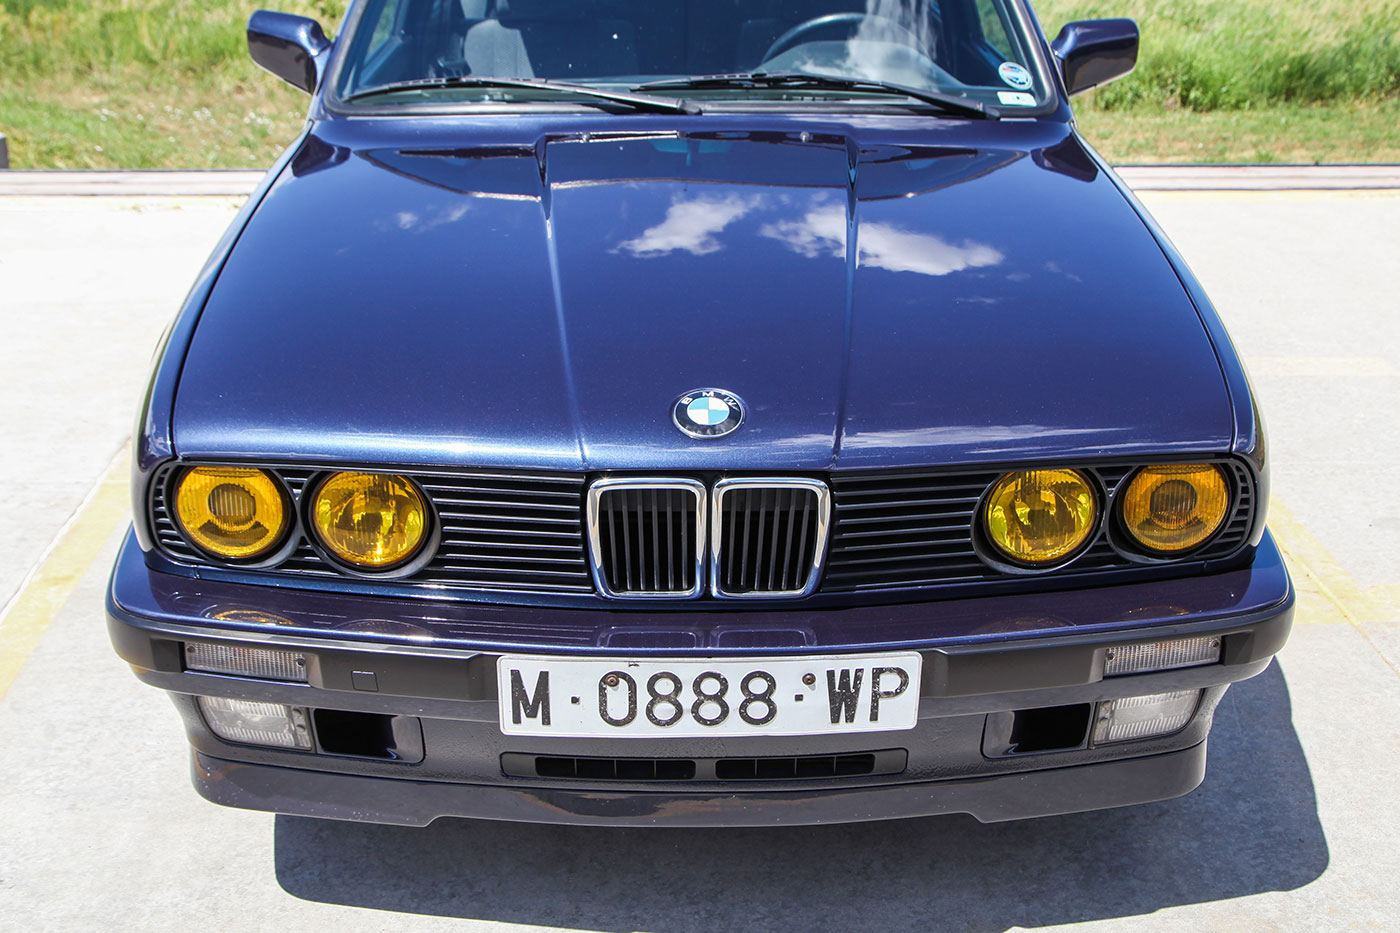 1989 BMW (E30) 325iX Touring